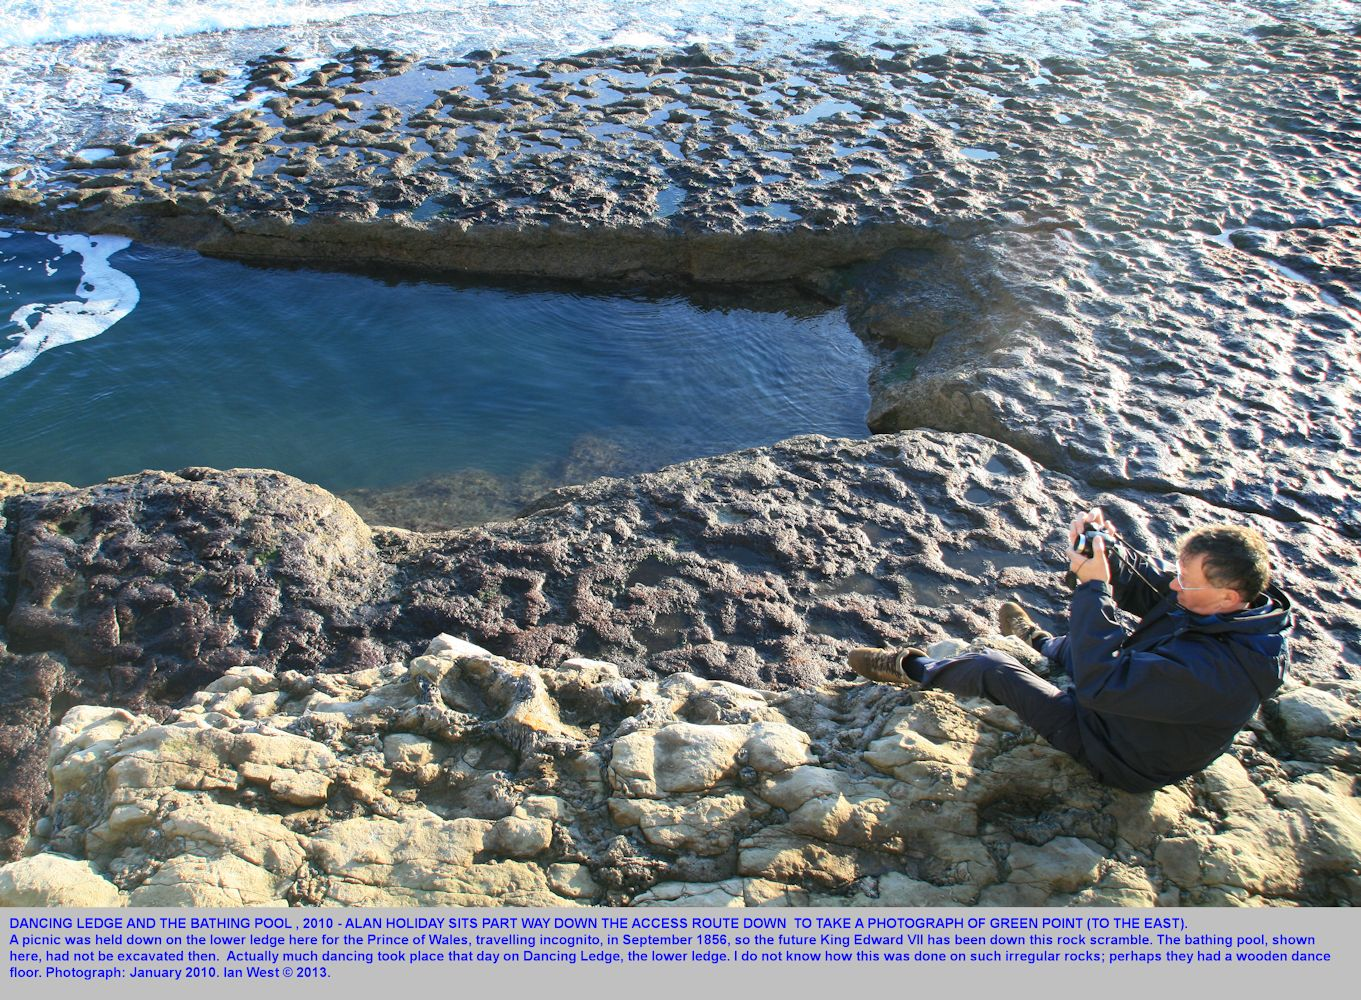 Alan Holiday taking a photograph above the Bathing Pool, Dancing Ledge, near Swanage, Isle of Purbeck, Dorset, 2010